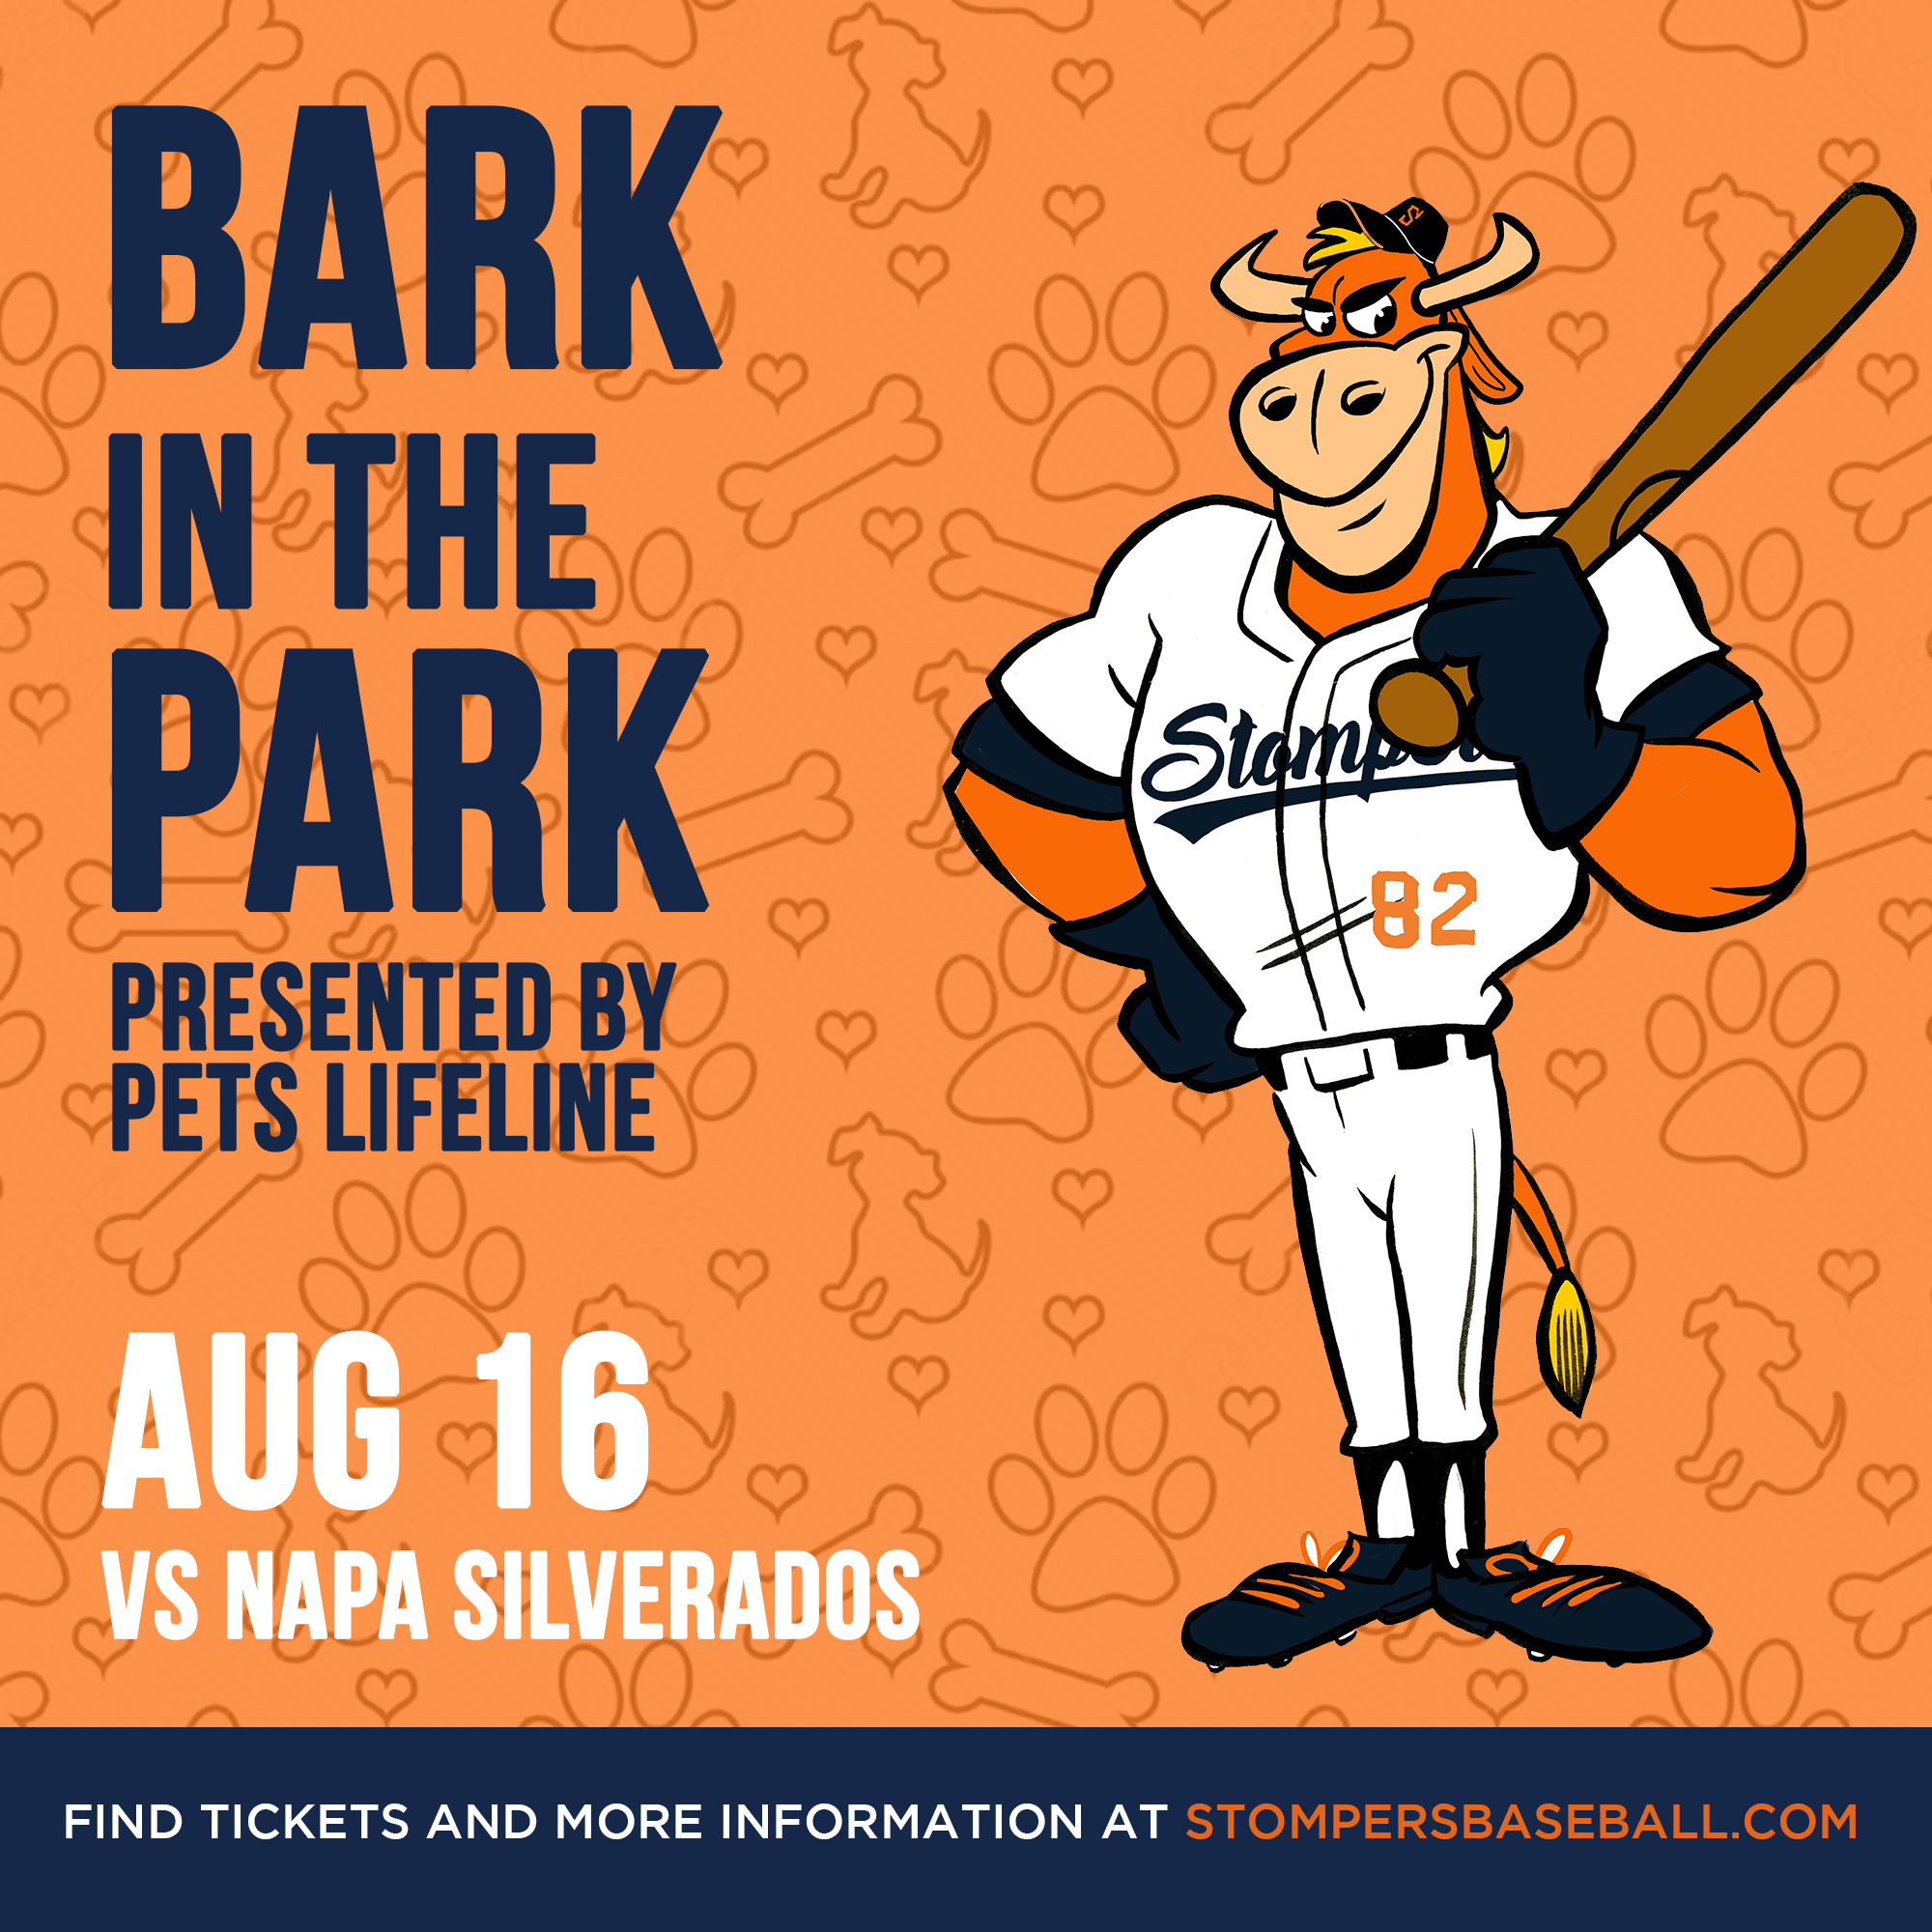 Aug 16: Bark in the Park - Its Bark in the Park night at Palooza Park at Arnold Field! Come out with your furry best friends and enjoy a ballgame!